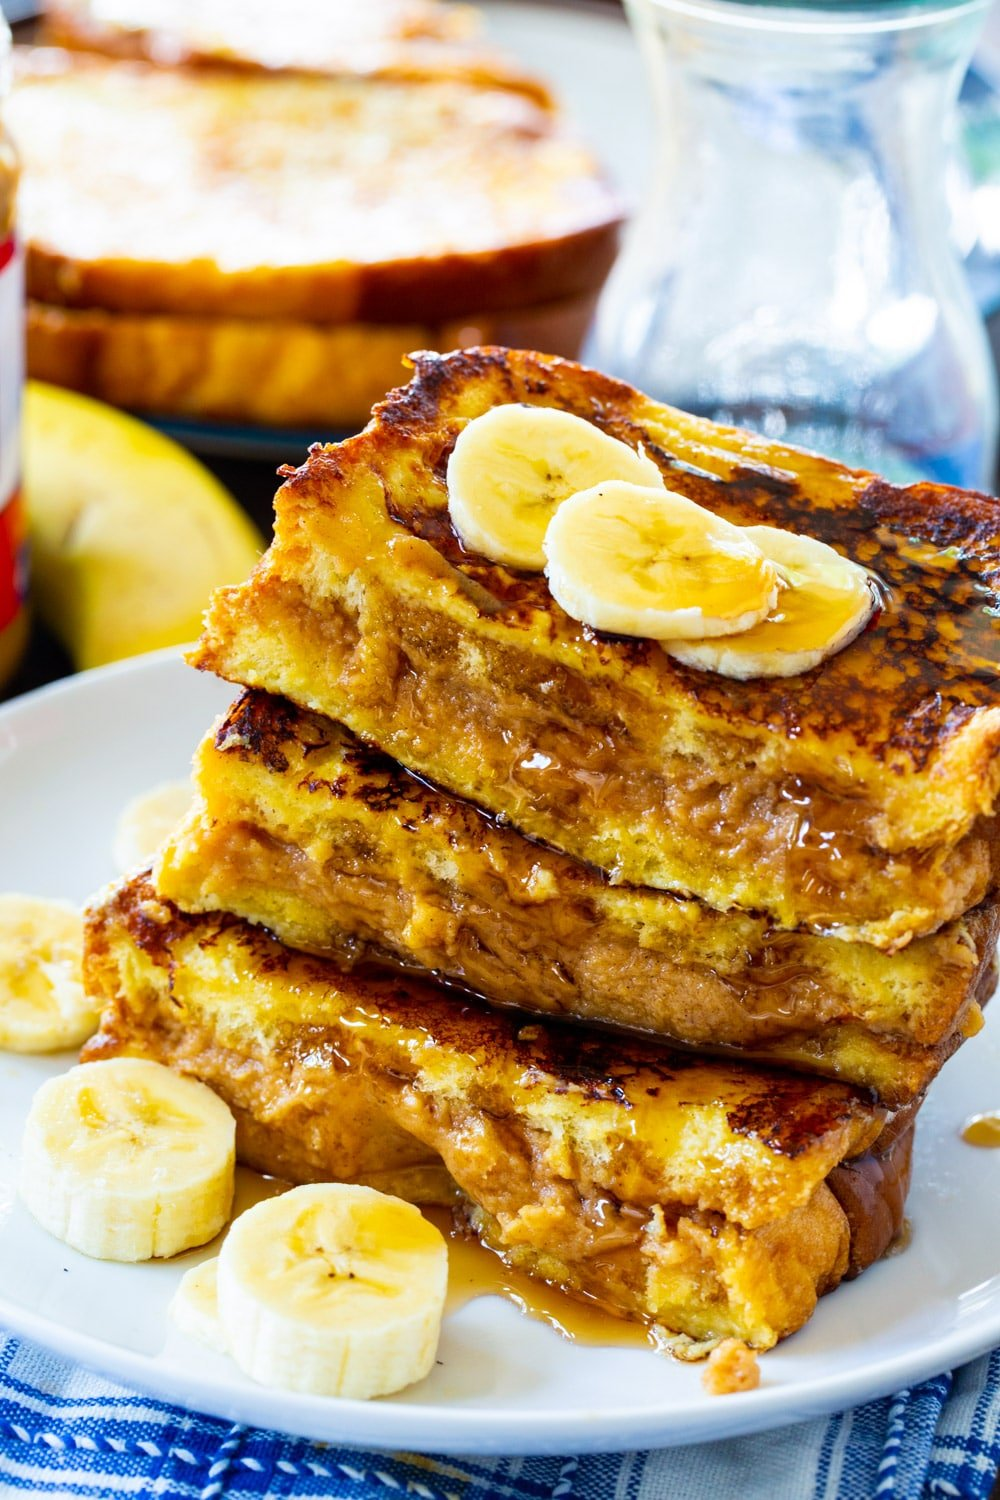 French Toast stuffed with peanut butter on a plate.